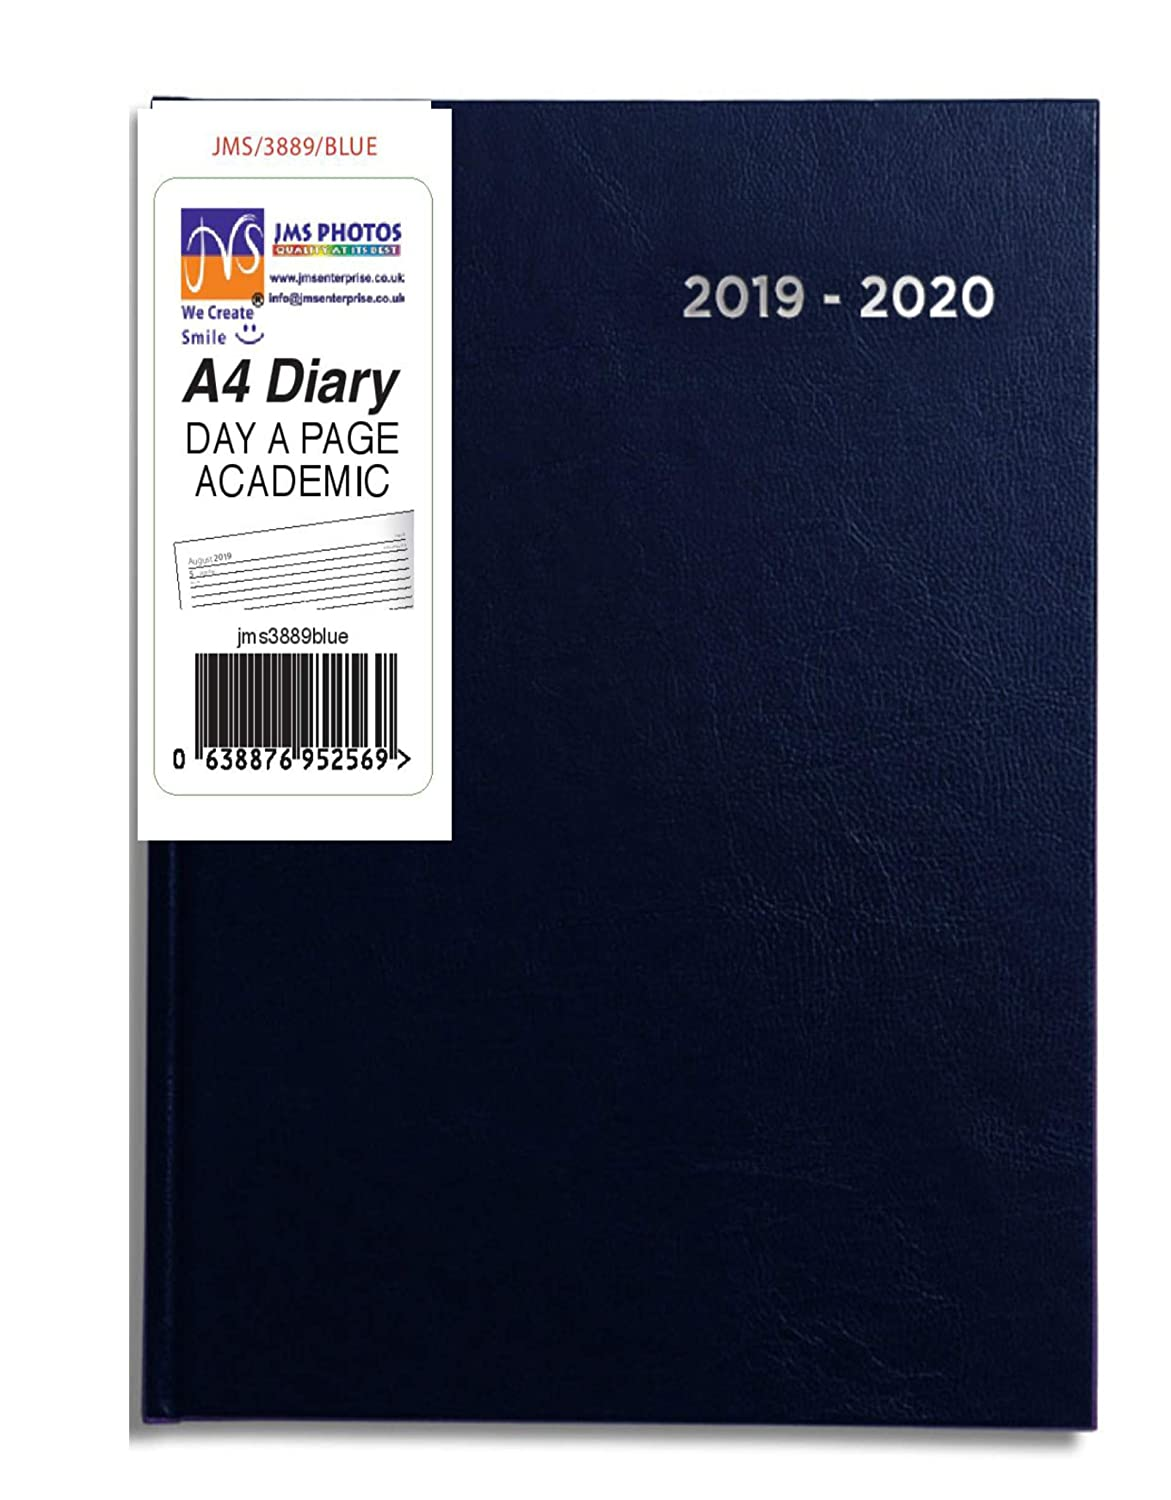 JMS® 2019-2020 A4 Size Day A Page Mid Year Academic Hardback Diary Notebooks, Writing Pads & Diaries Purple